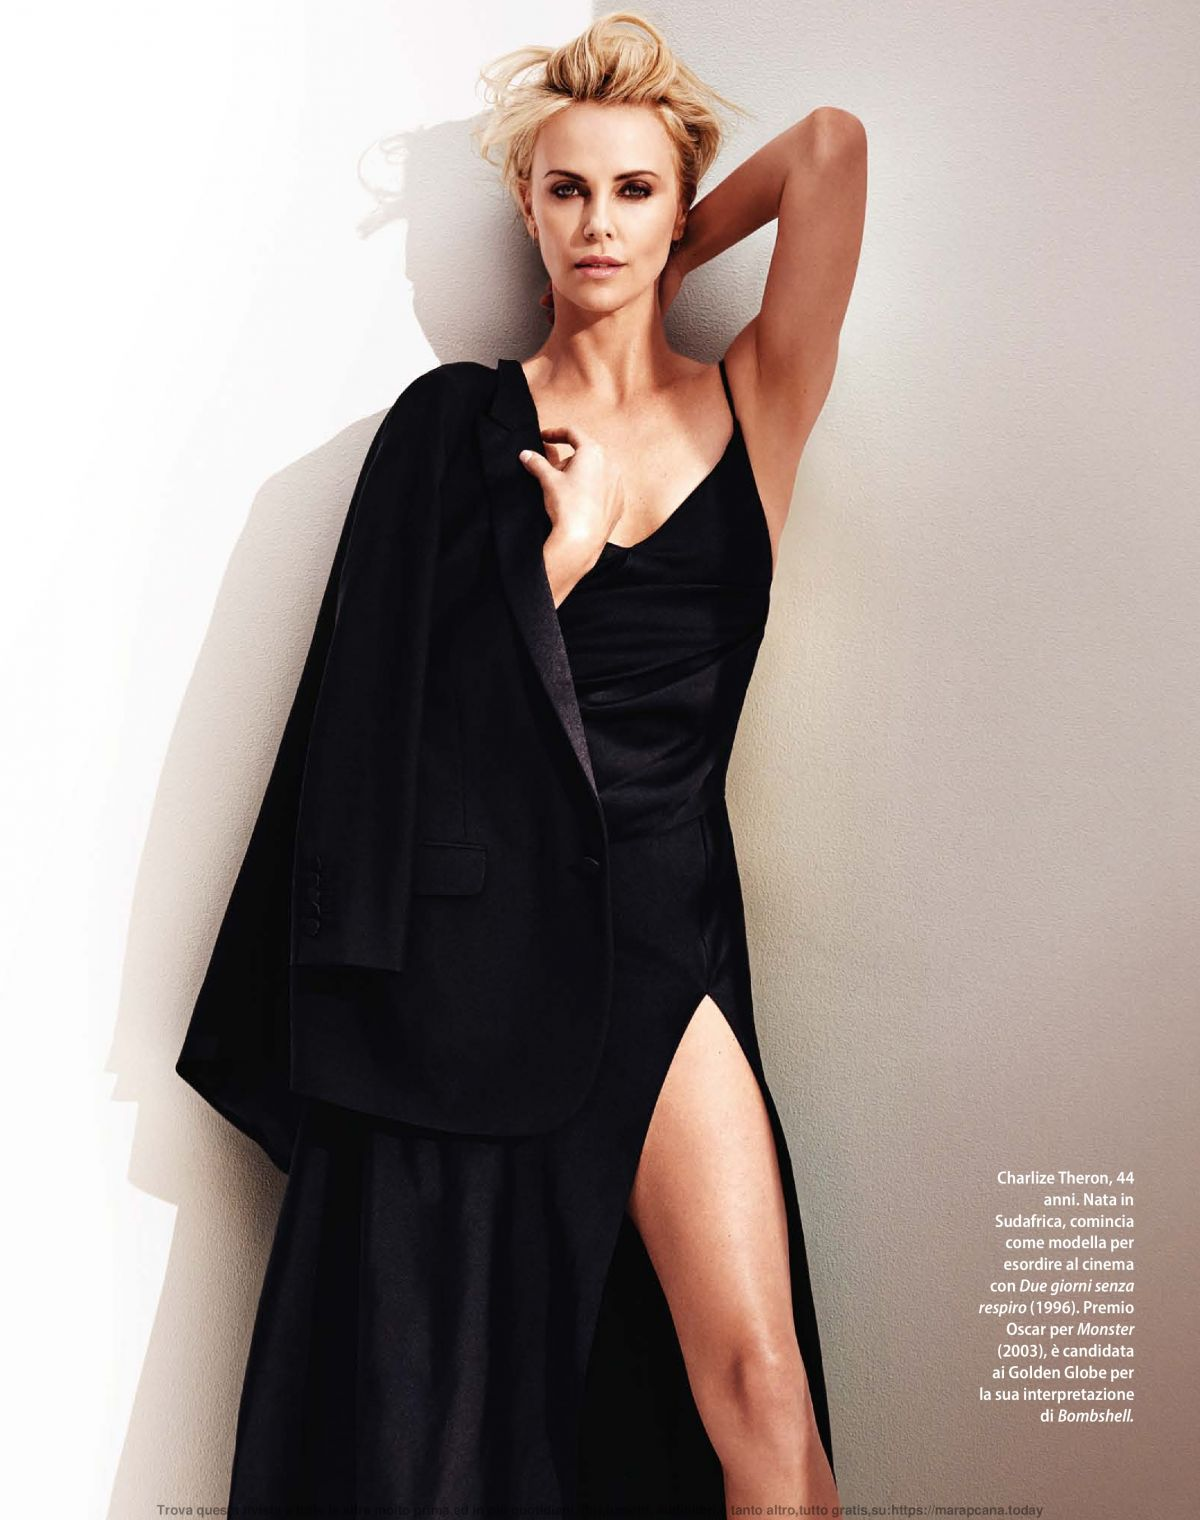 Charlize Theron Erotic